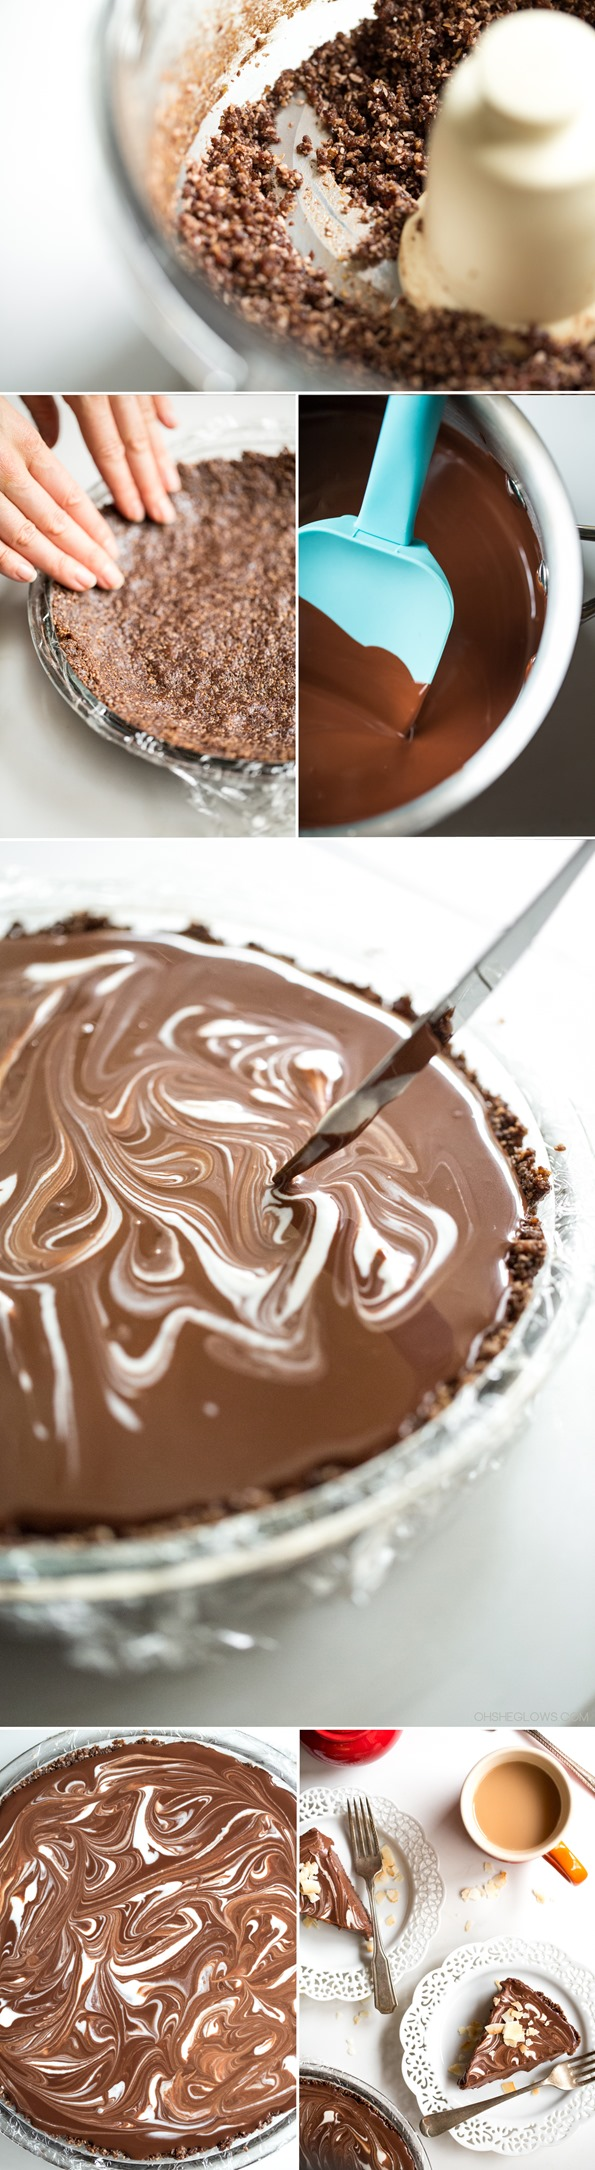 ... double chocolate tart recipes dishmaps double chocolate tart recipes